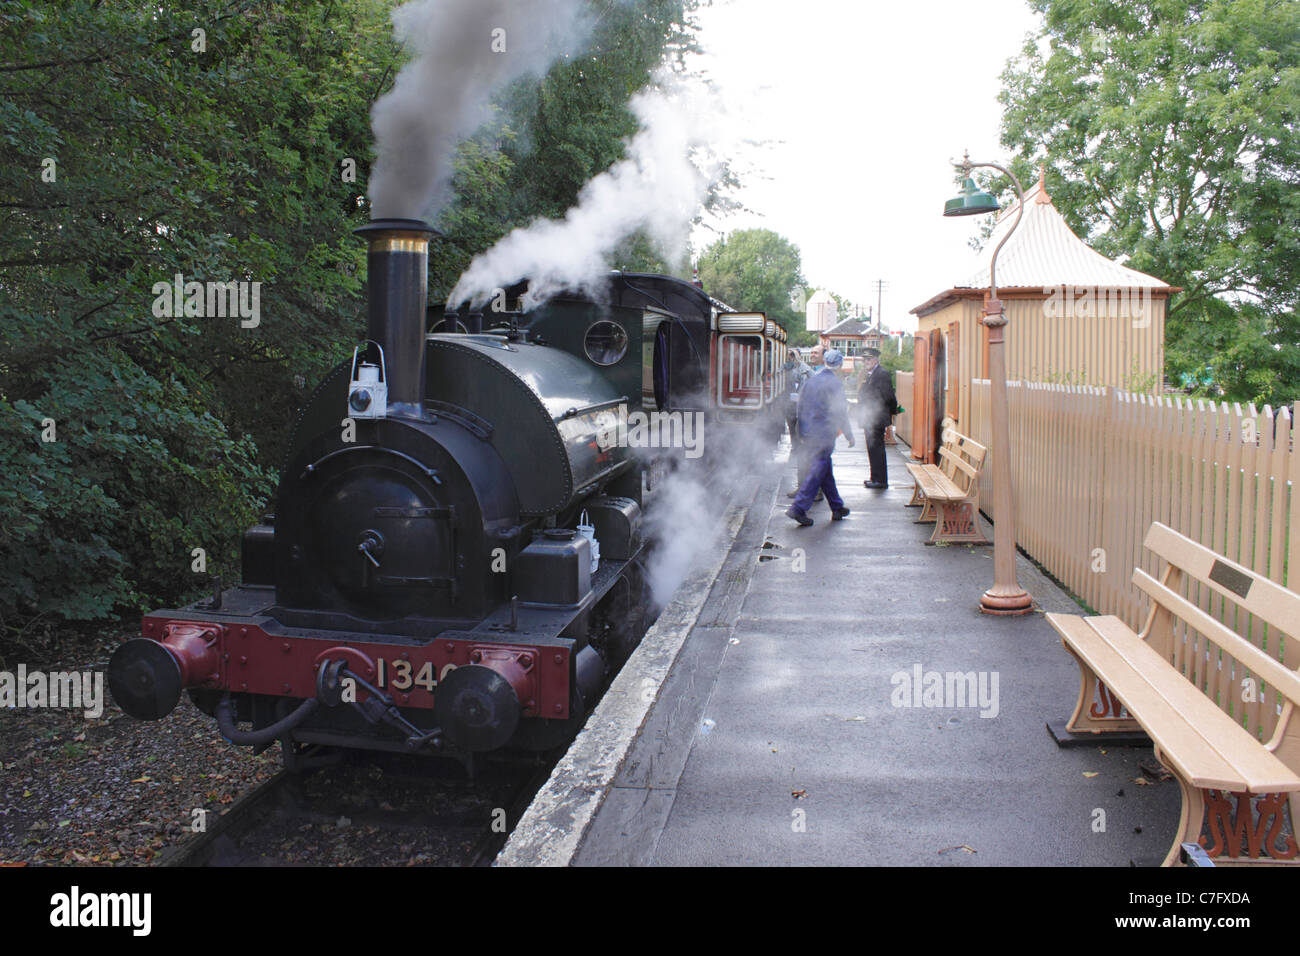 0-4-0 Saddle Tank Steam Locomotive at Didcot Railway Centre September 2011 - Stock Image